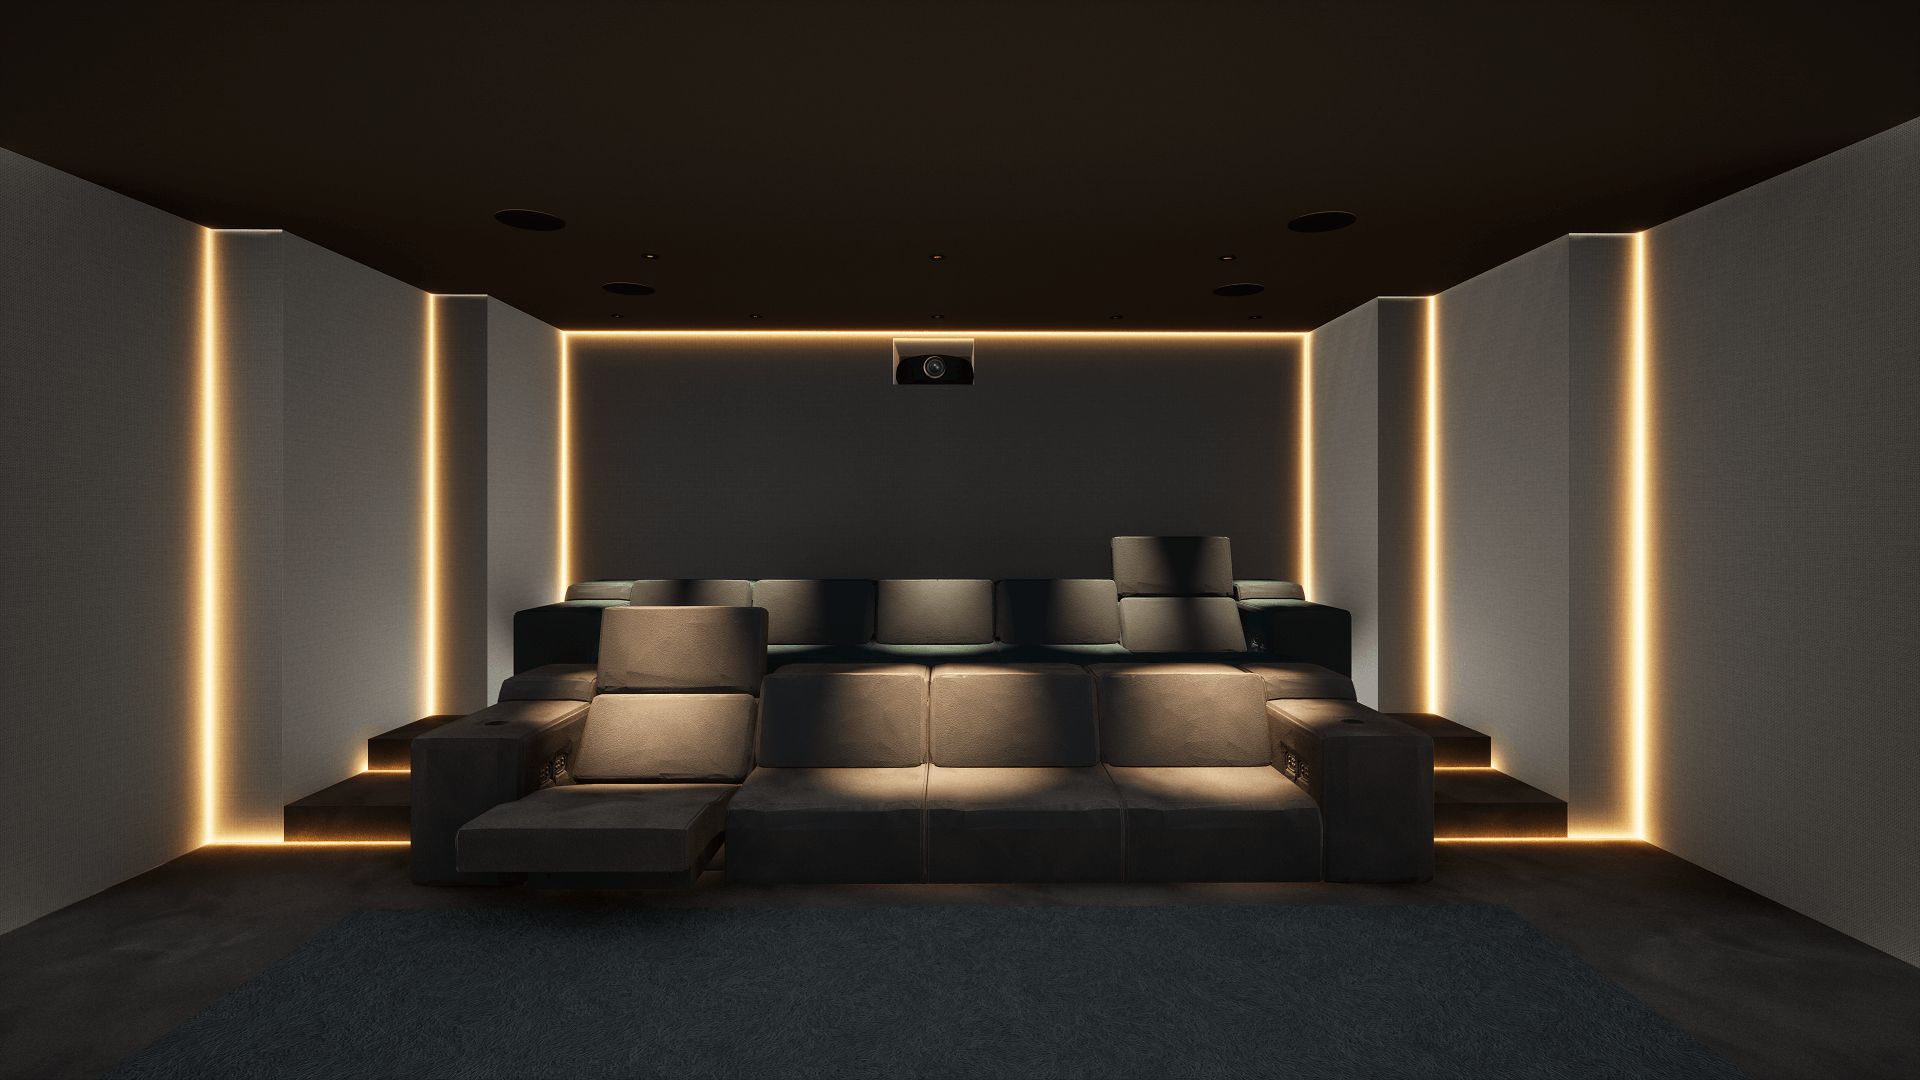 Home Cinema Room in District One, Dubai